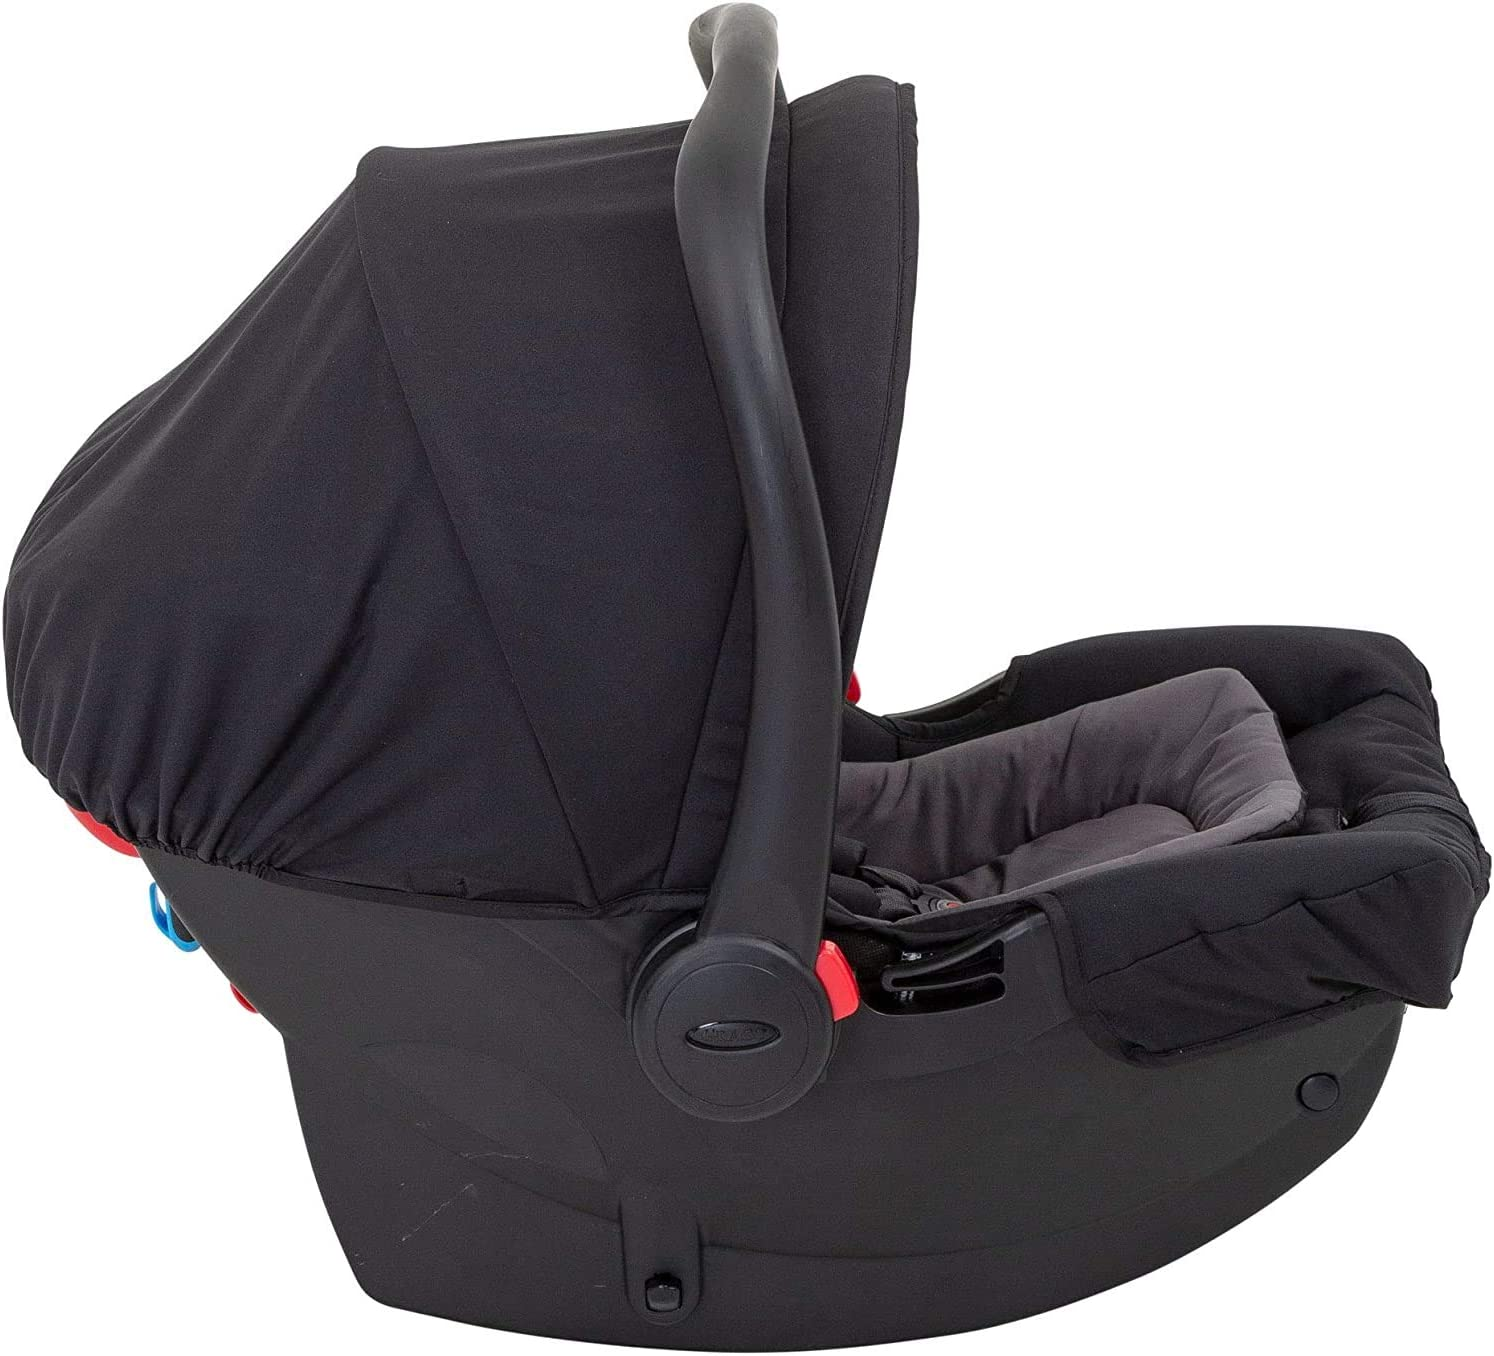 Graco Breaze Lite i-Size Travel System with Raincover Black Pushchair /& Car Seat, Birth to 3 Years Approx, 0-15kg